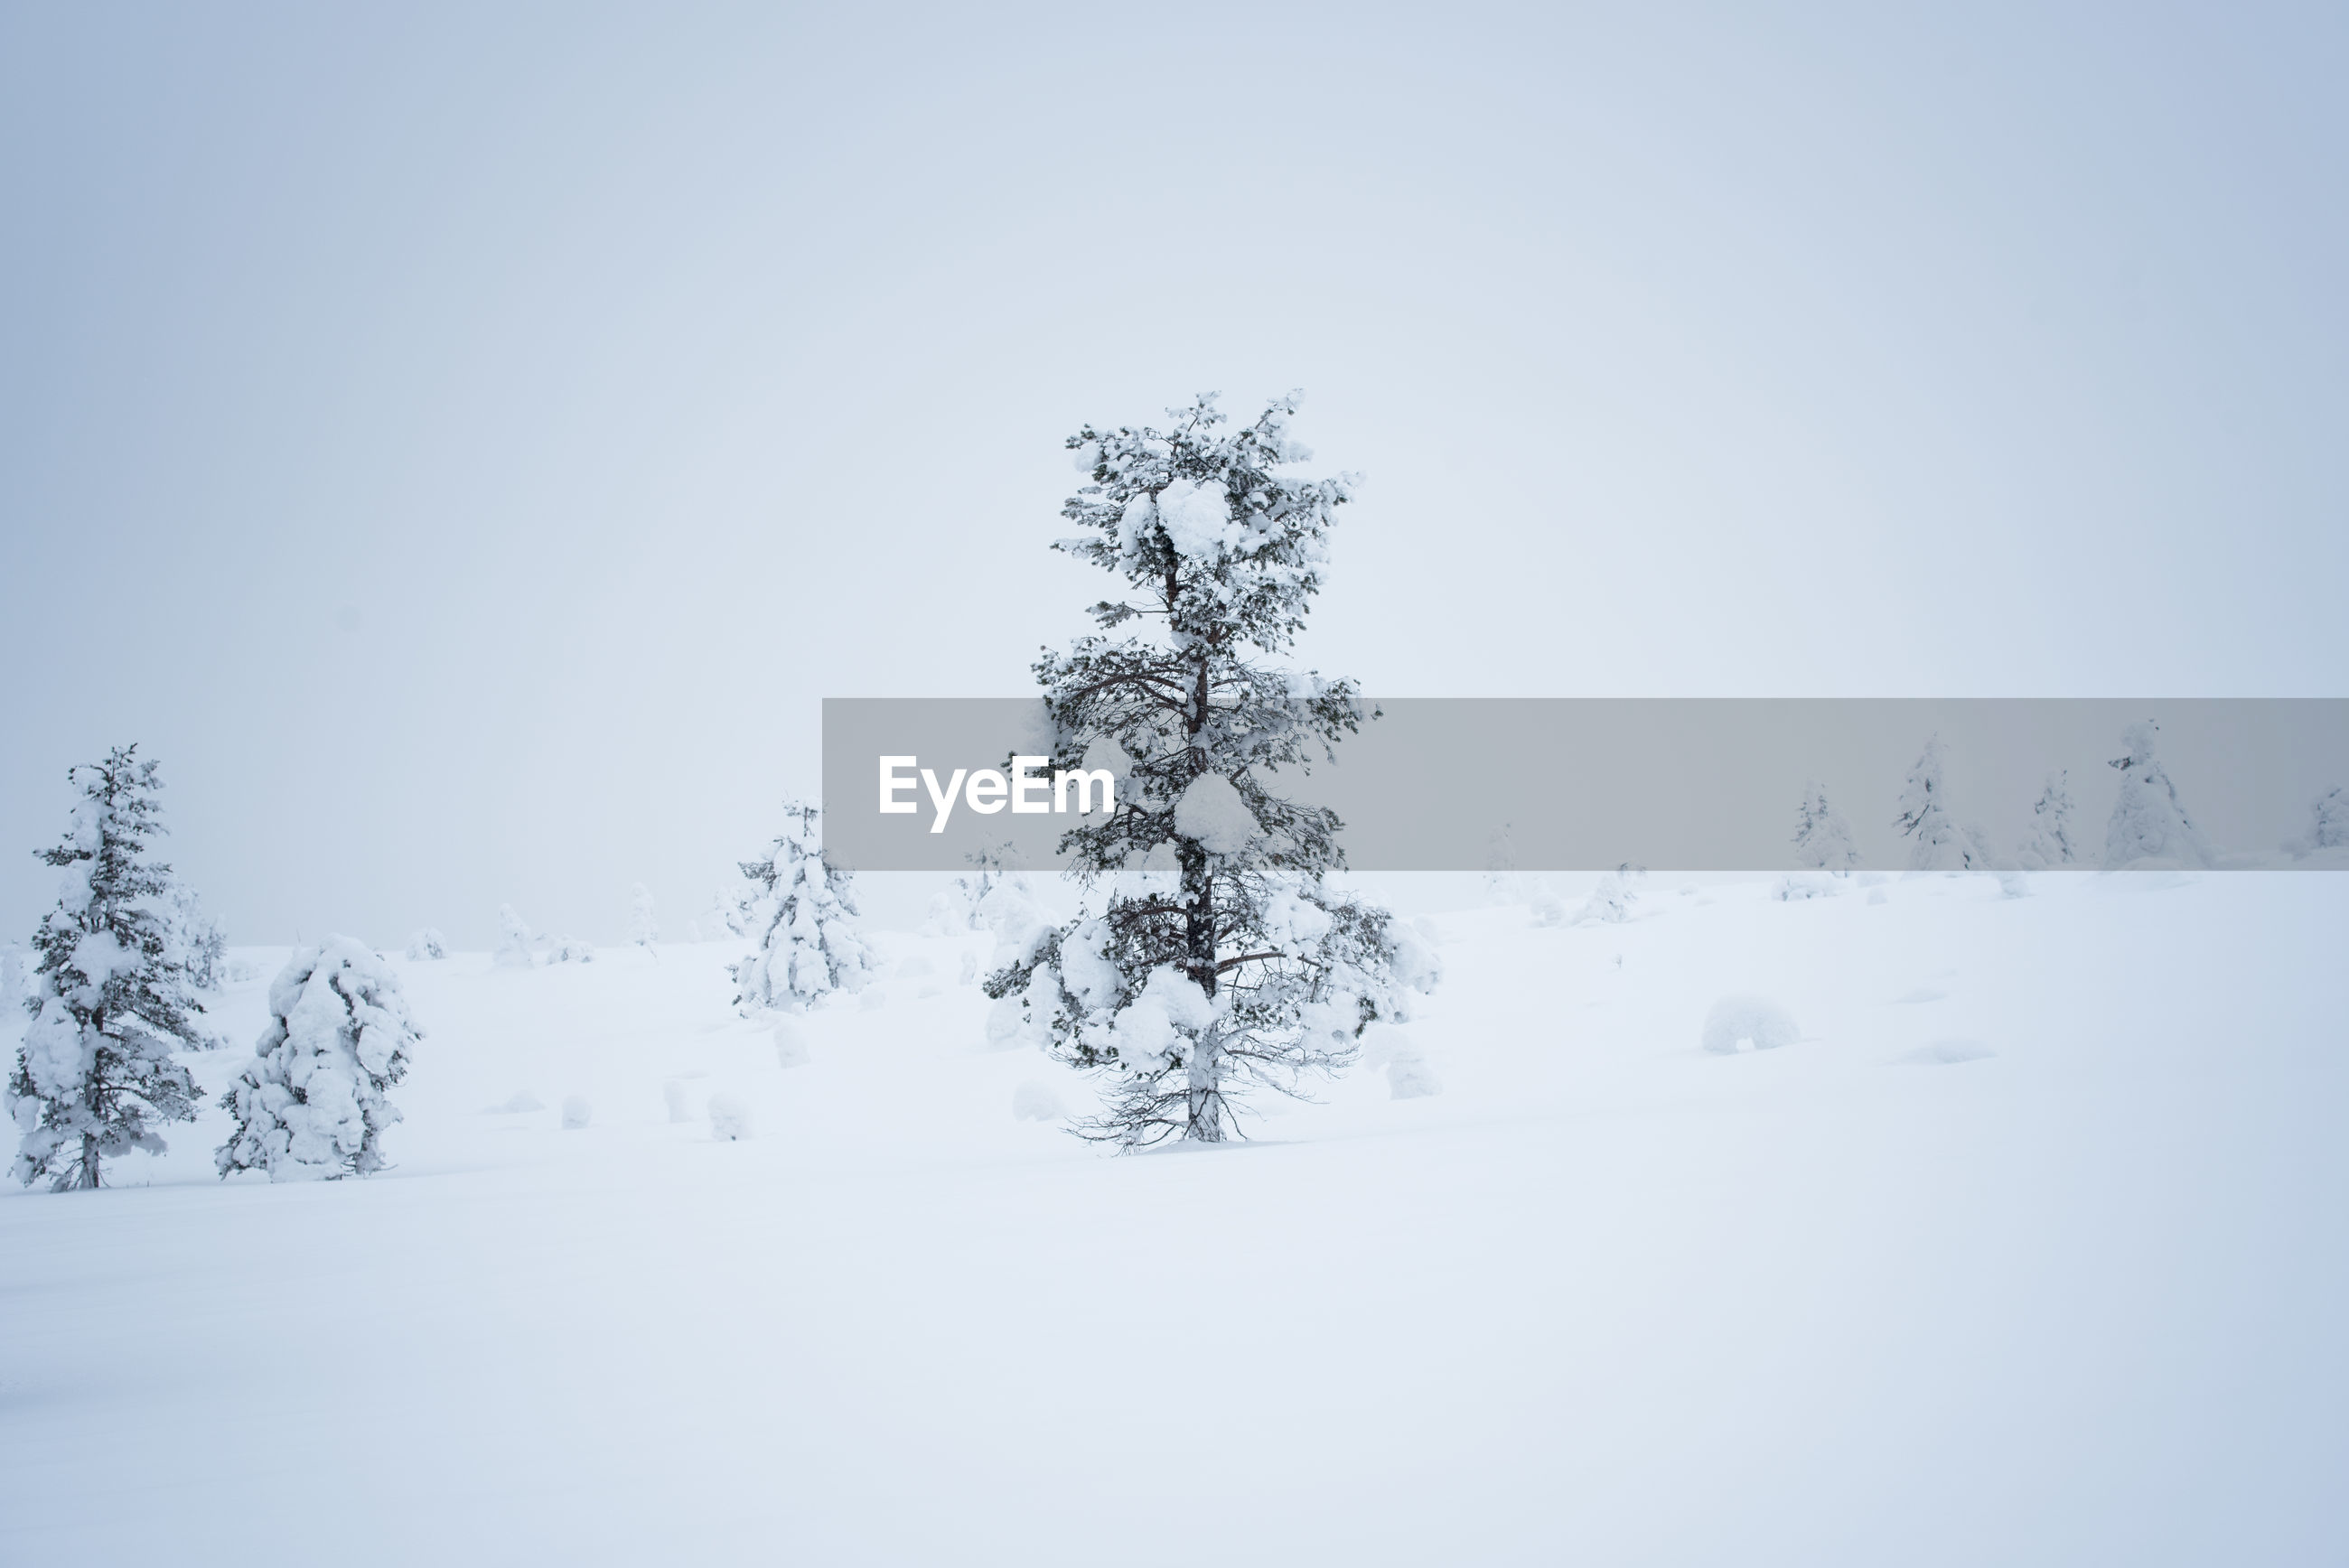 Snow covered field against sky during foggy weather